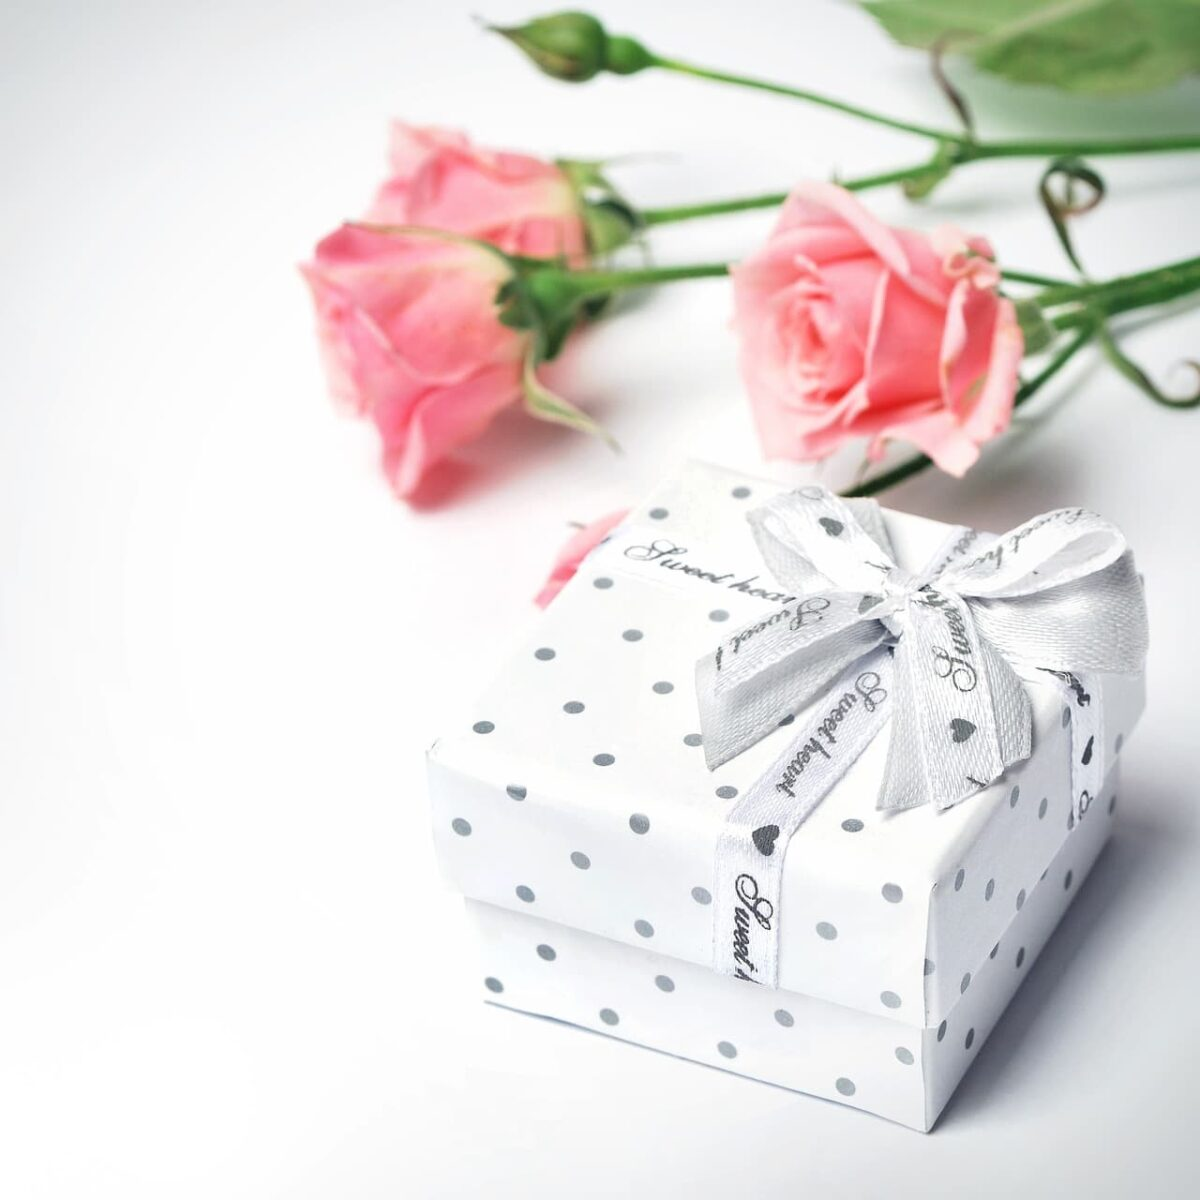 Valentine's Gift Ideas For Men and Women